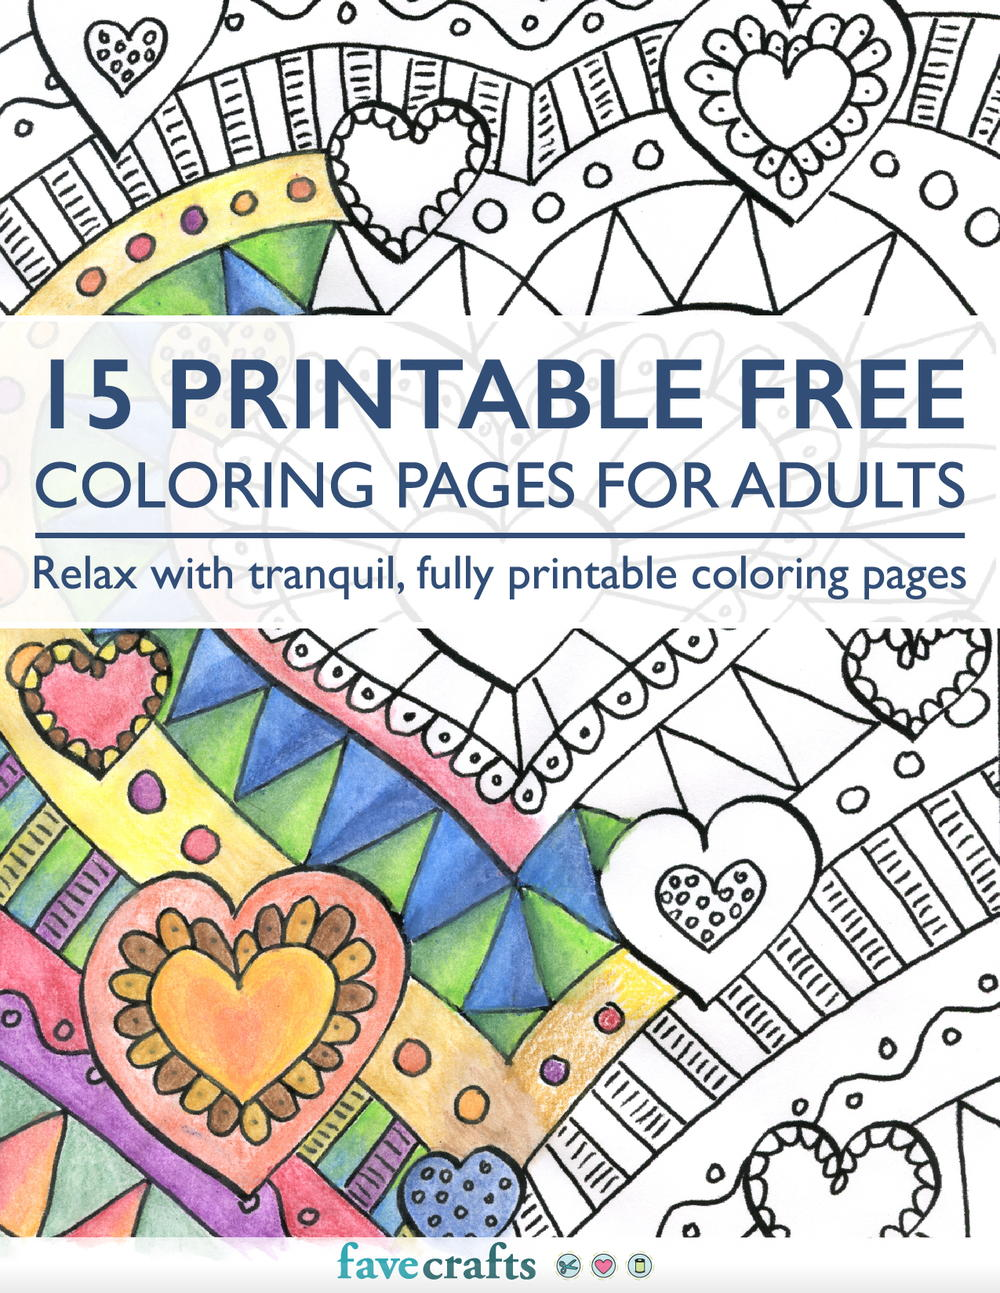 15 Printable Free Coloring Pages for Adults [PDF ... | free printable coloring pages for adults